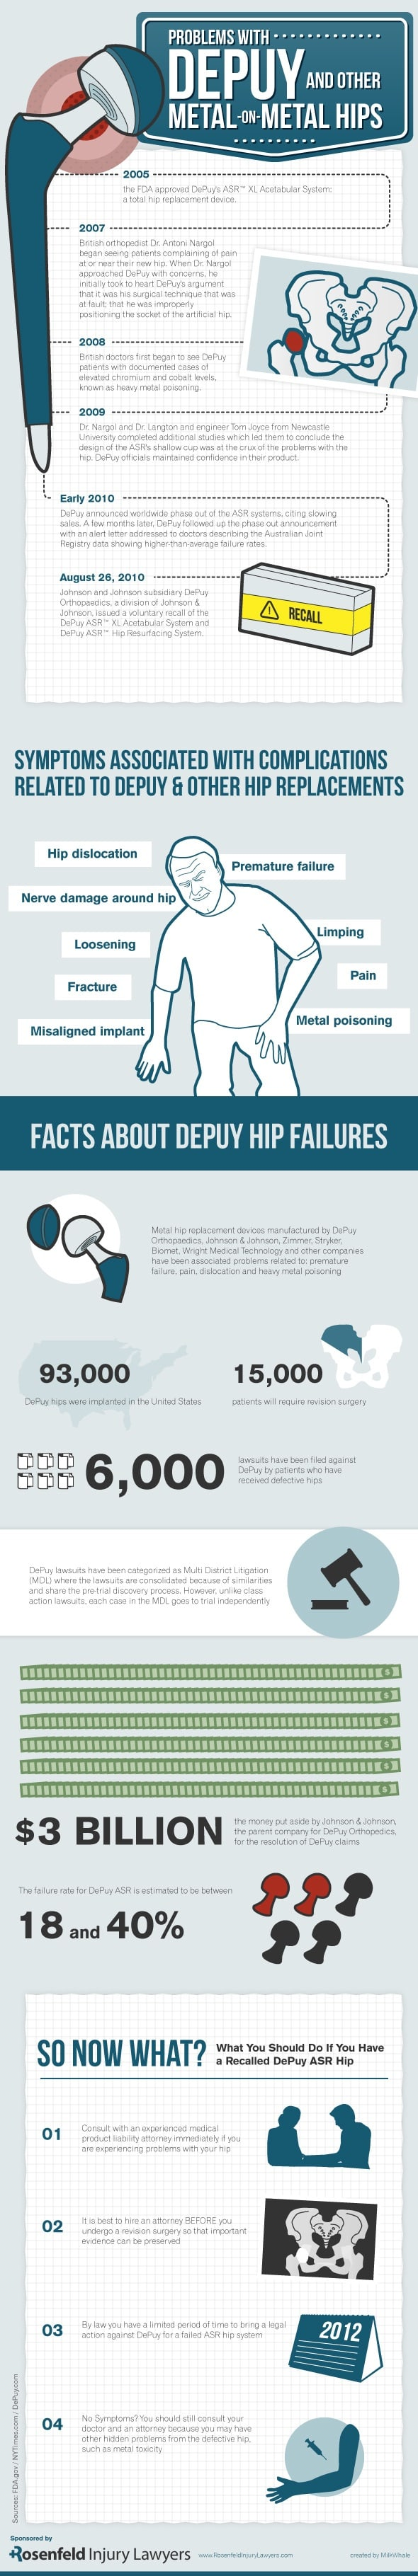 DePuy Hip Complications